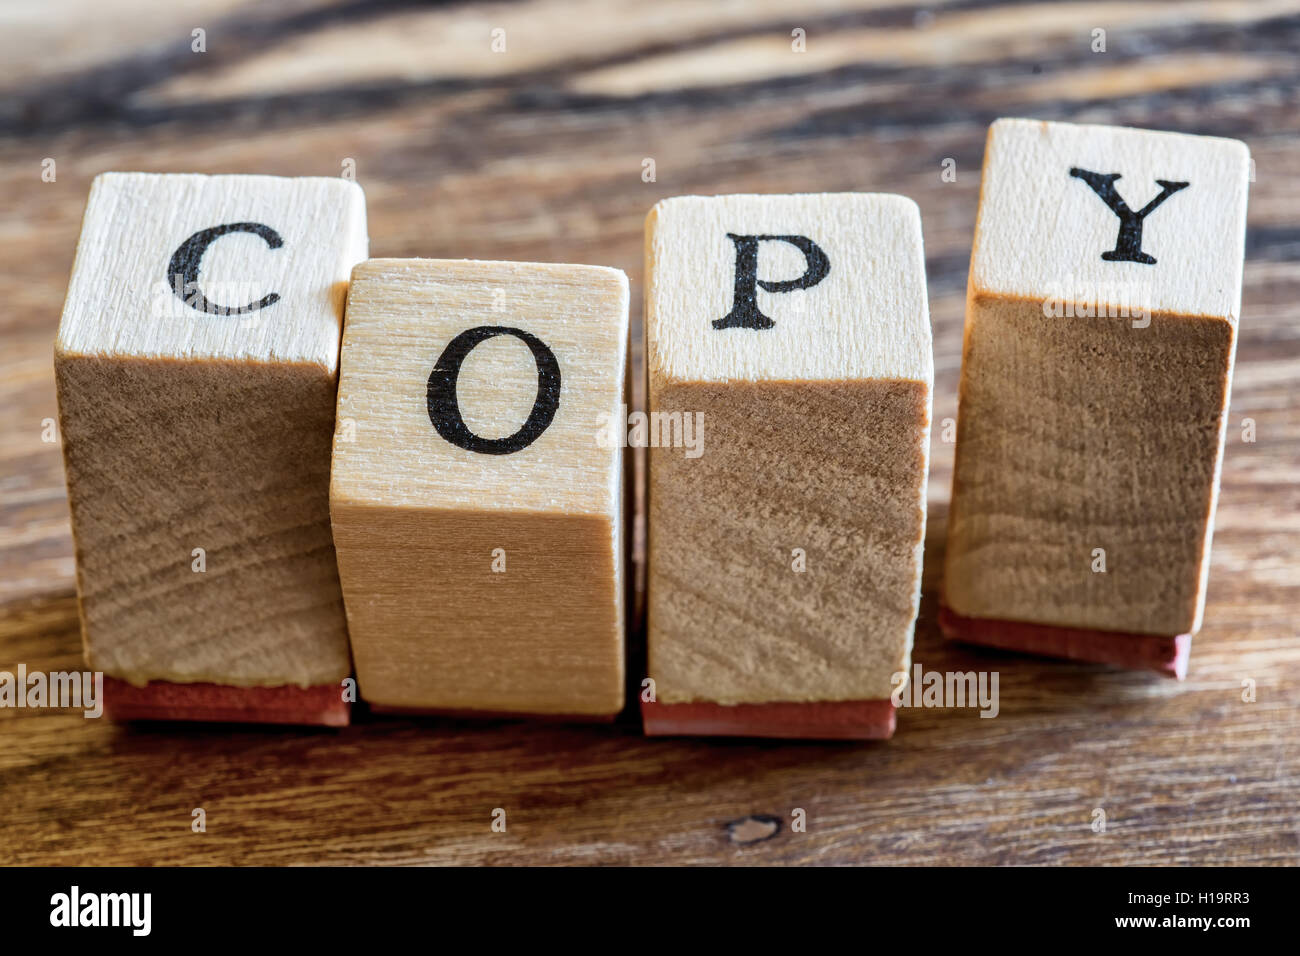 Copy Stamp on Woden Background. Copy Word Written in Wood Blocks. - Stock Image